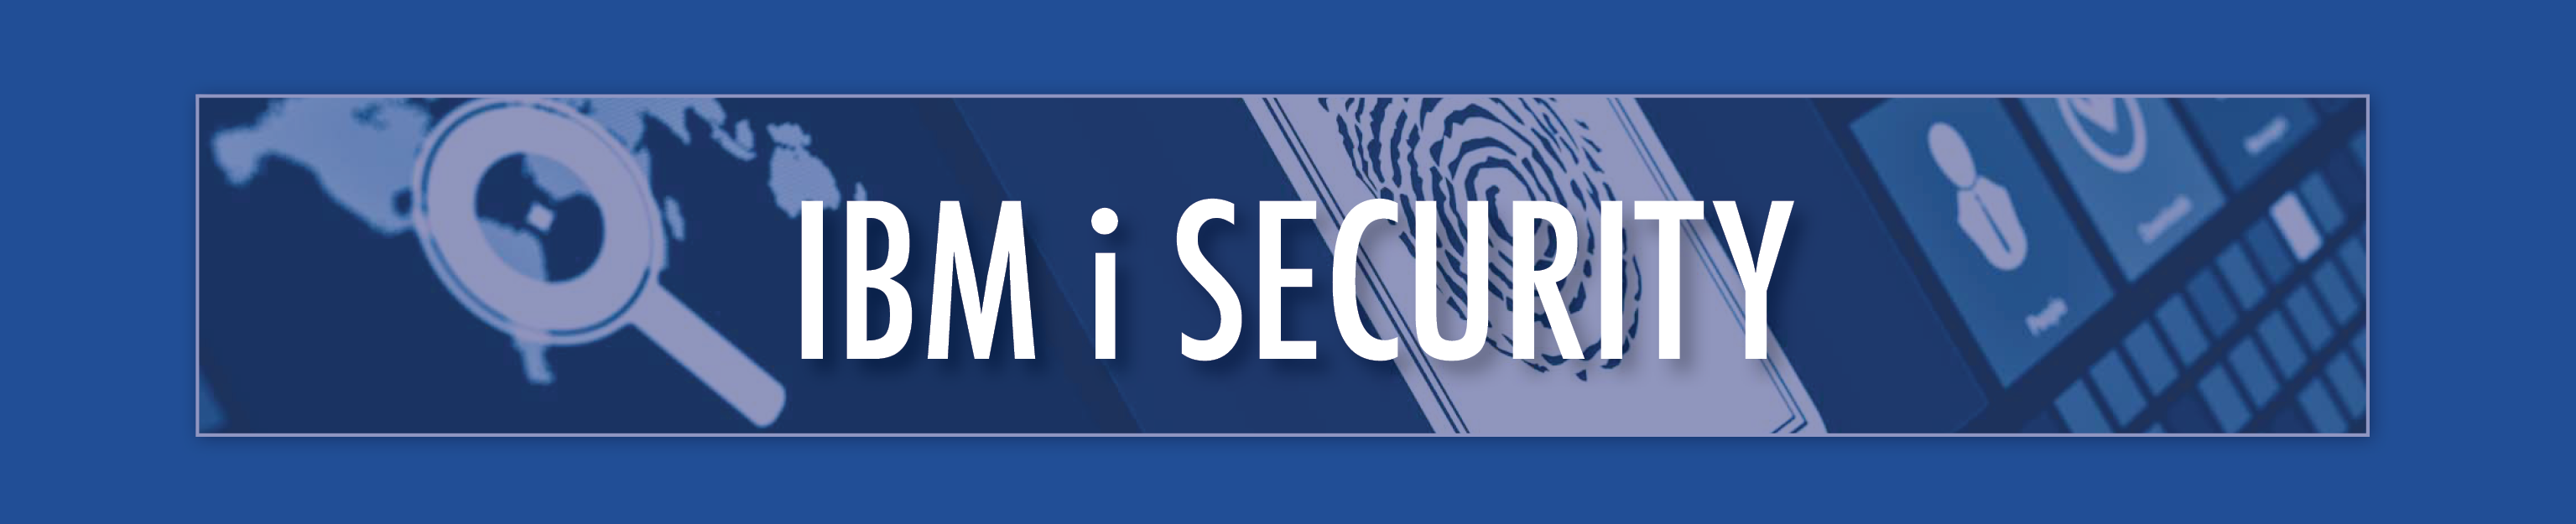 Newsletter_banner_security.png